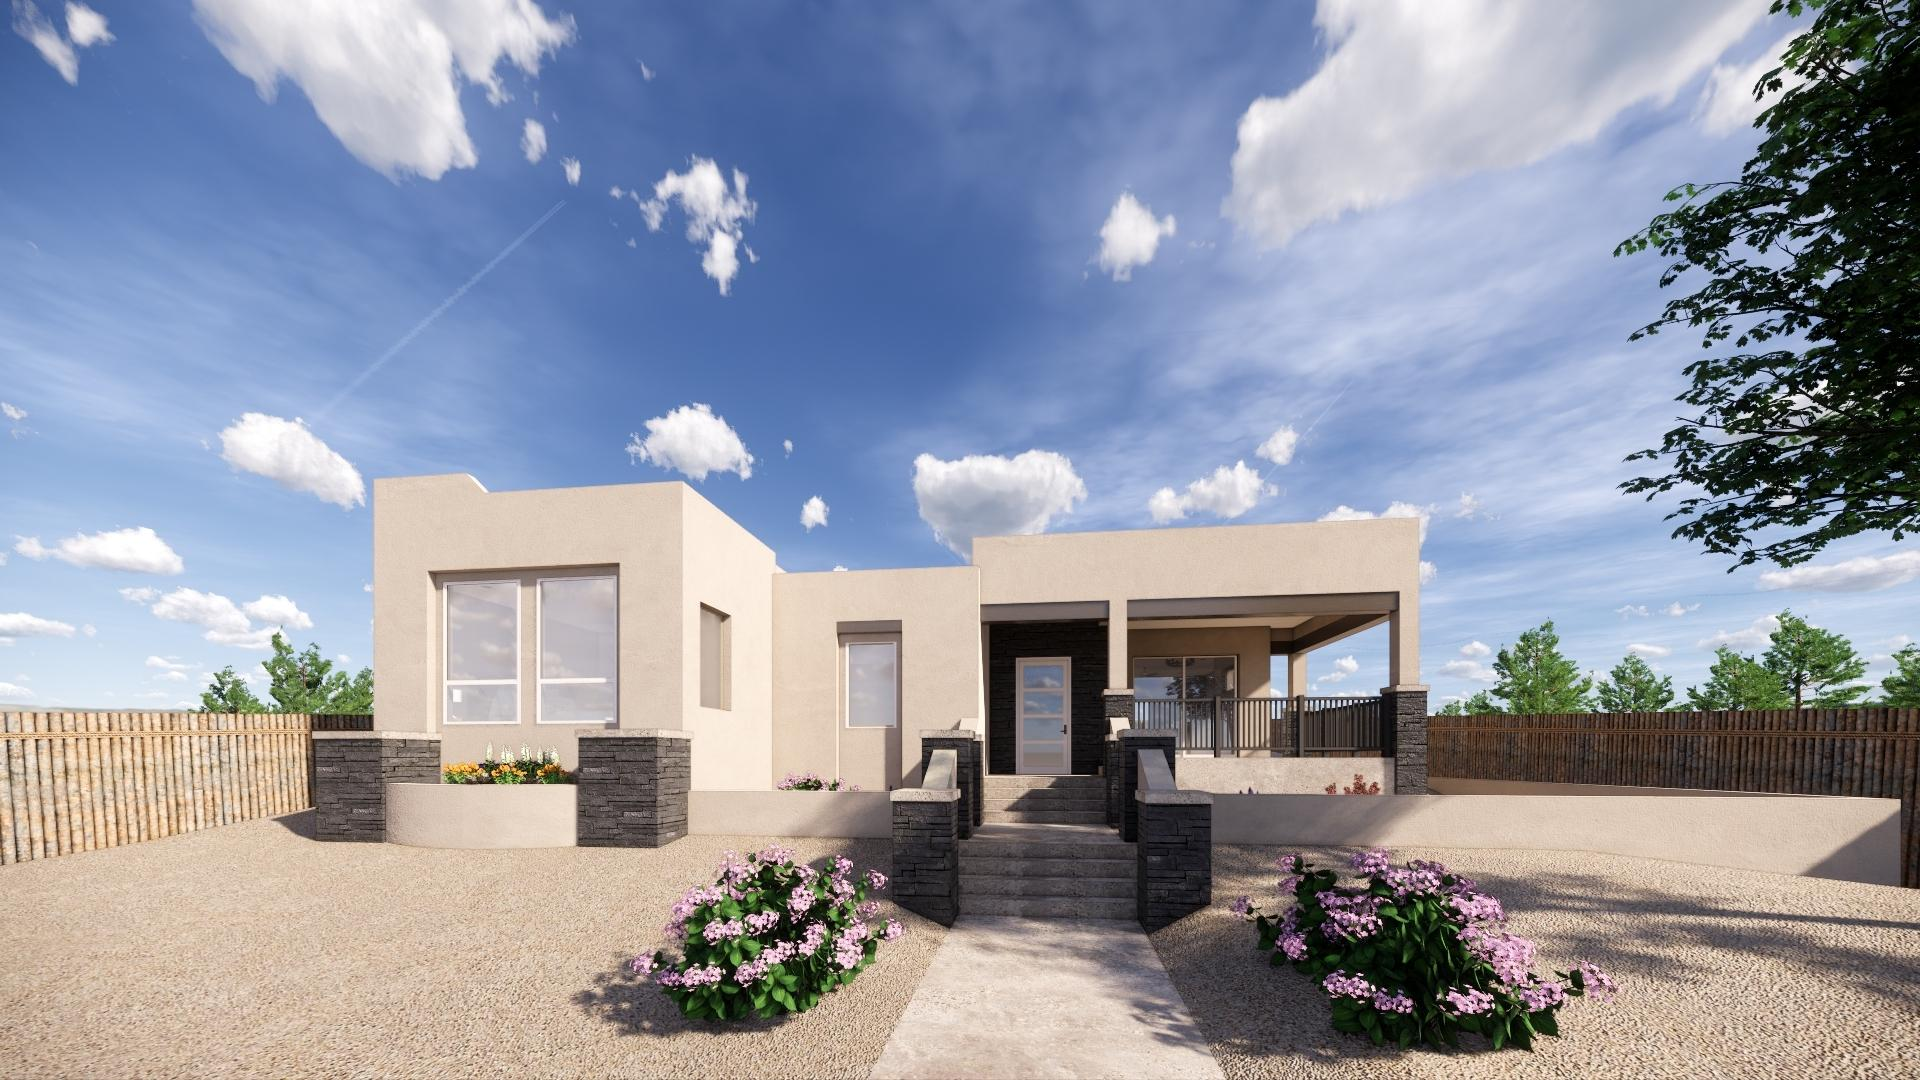 Take a Virtual Tour of this gorgeous home that is under construction. Set to be completed Sept/Oct 2020 . With easy access to I-25 and the Santa Fe community College, the location alone will have you wanting to make this yours. The open floorplan will welcome you and guests into a natural light filled room that has beautiful tile floors and modern touches that make you feel at home! When you entering this home you are greeted by an office space with french doors that open up to look onto front patio! Shoot, this flex space could be for you to do business right from your home! The master is separate from the rest of the bedrooms making it your favorite oasis to unwind and relax. The kitchen boasts Bosch appliances and the island will be the perfect place to enjoy meals and make memories.